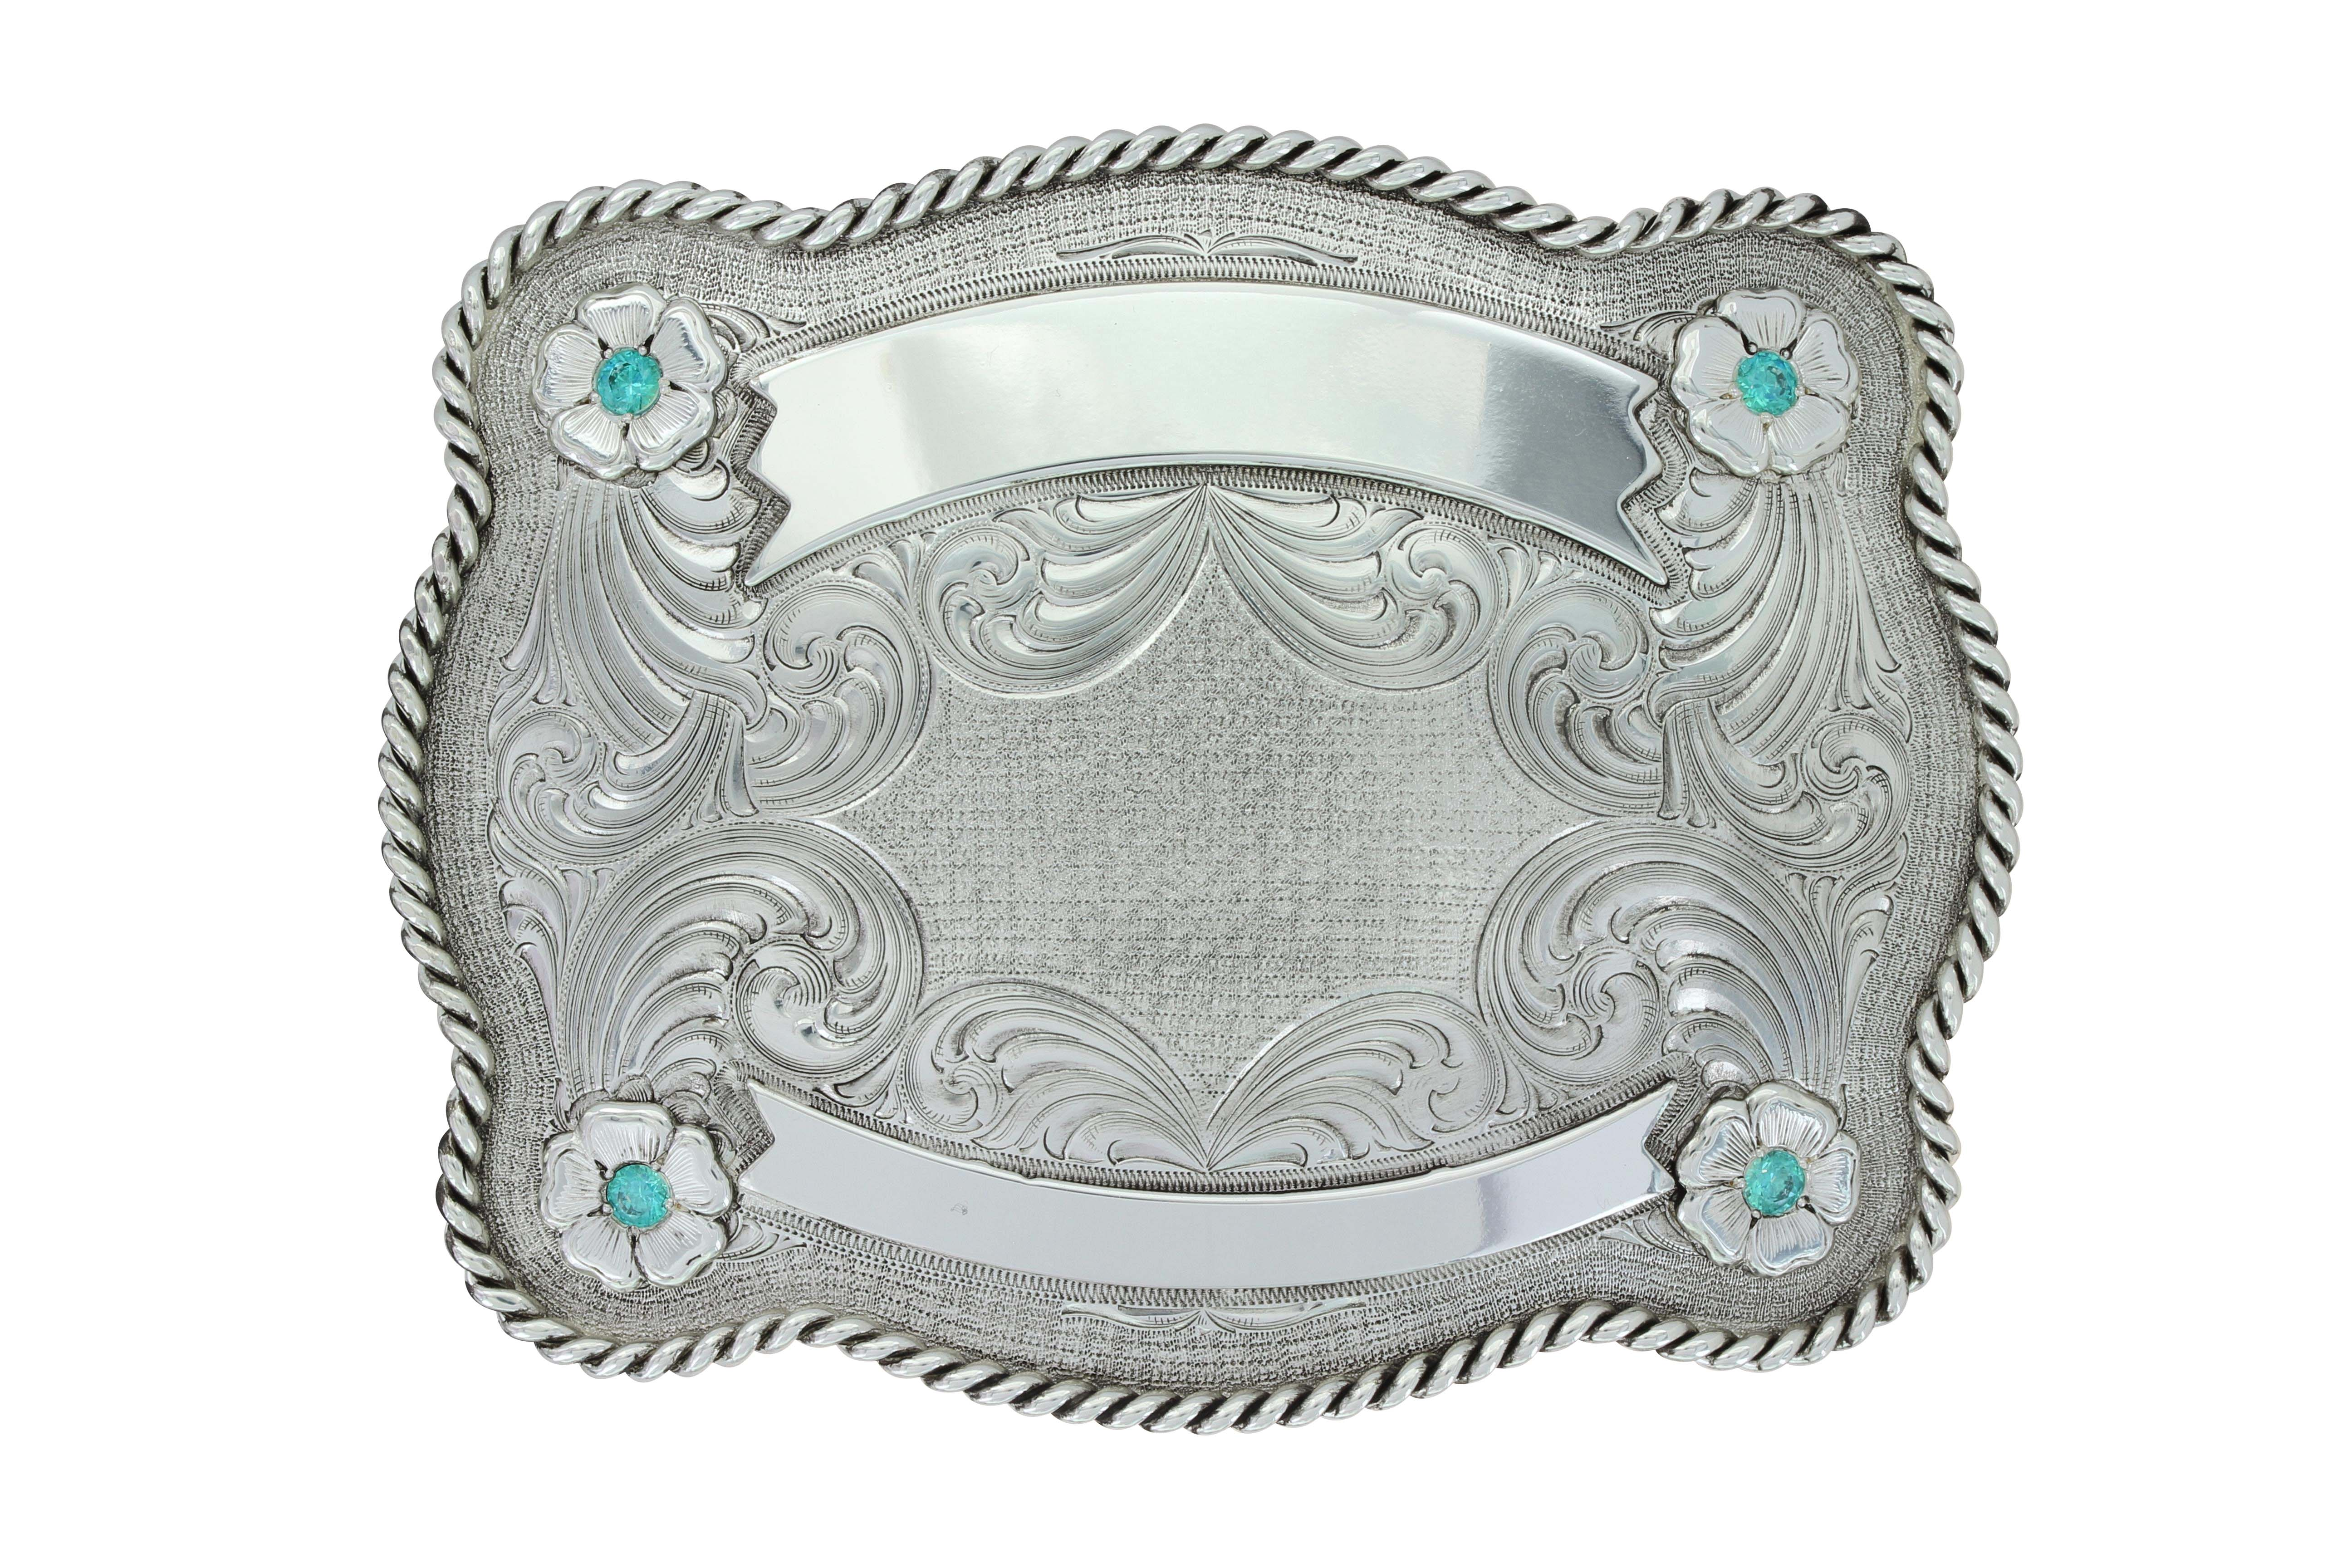 Antiqued Fort Benton Trophy Buckle (4.25